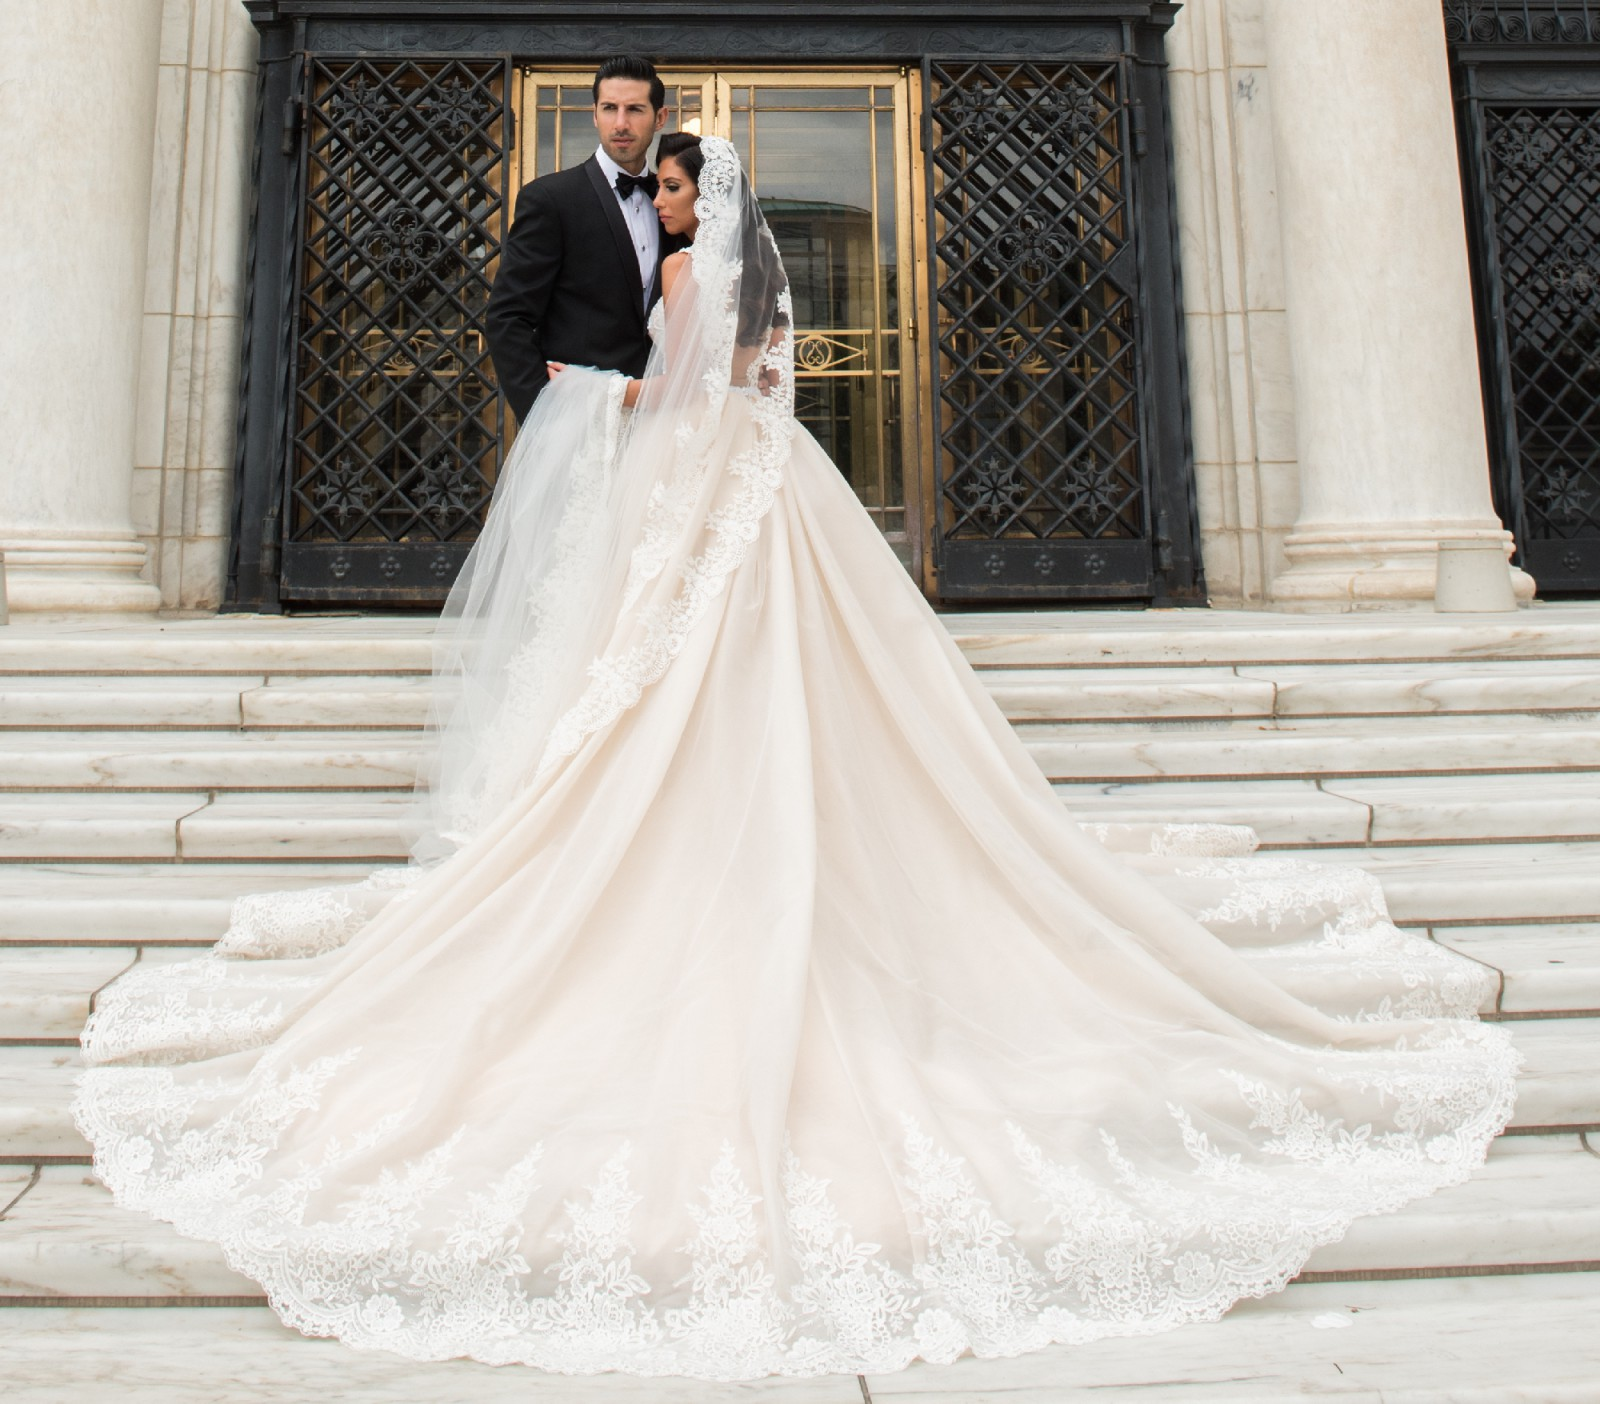 Galia Lahav Wedding Dresses: Galia Lahav Crystal Skirt Second Hand Wedding Dress On